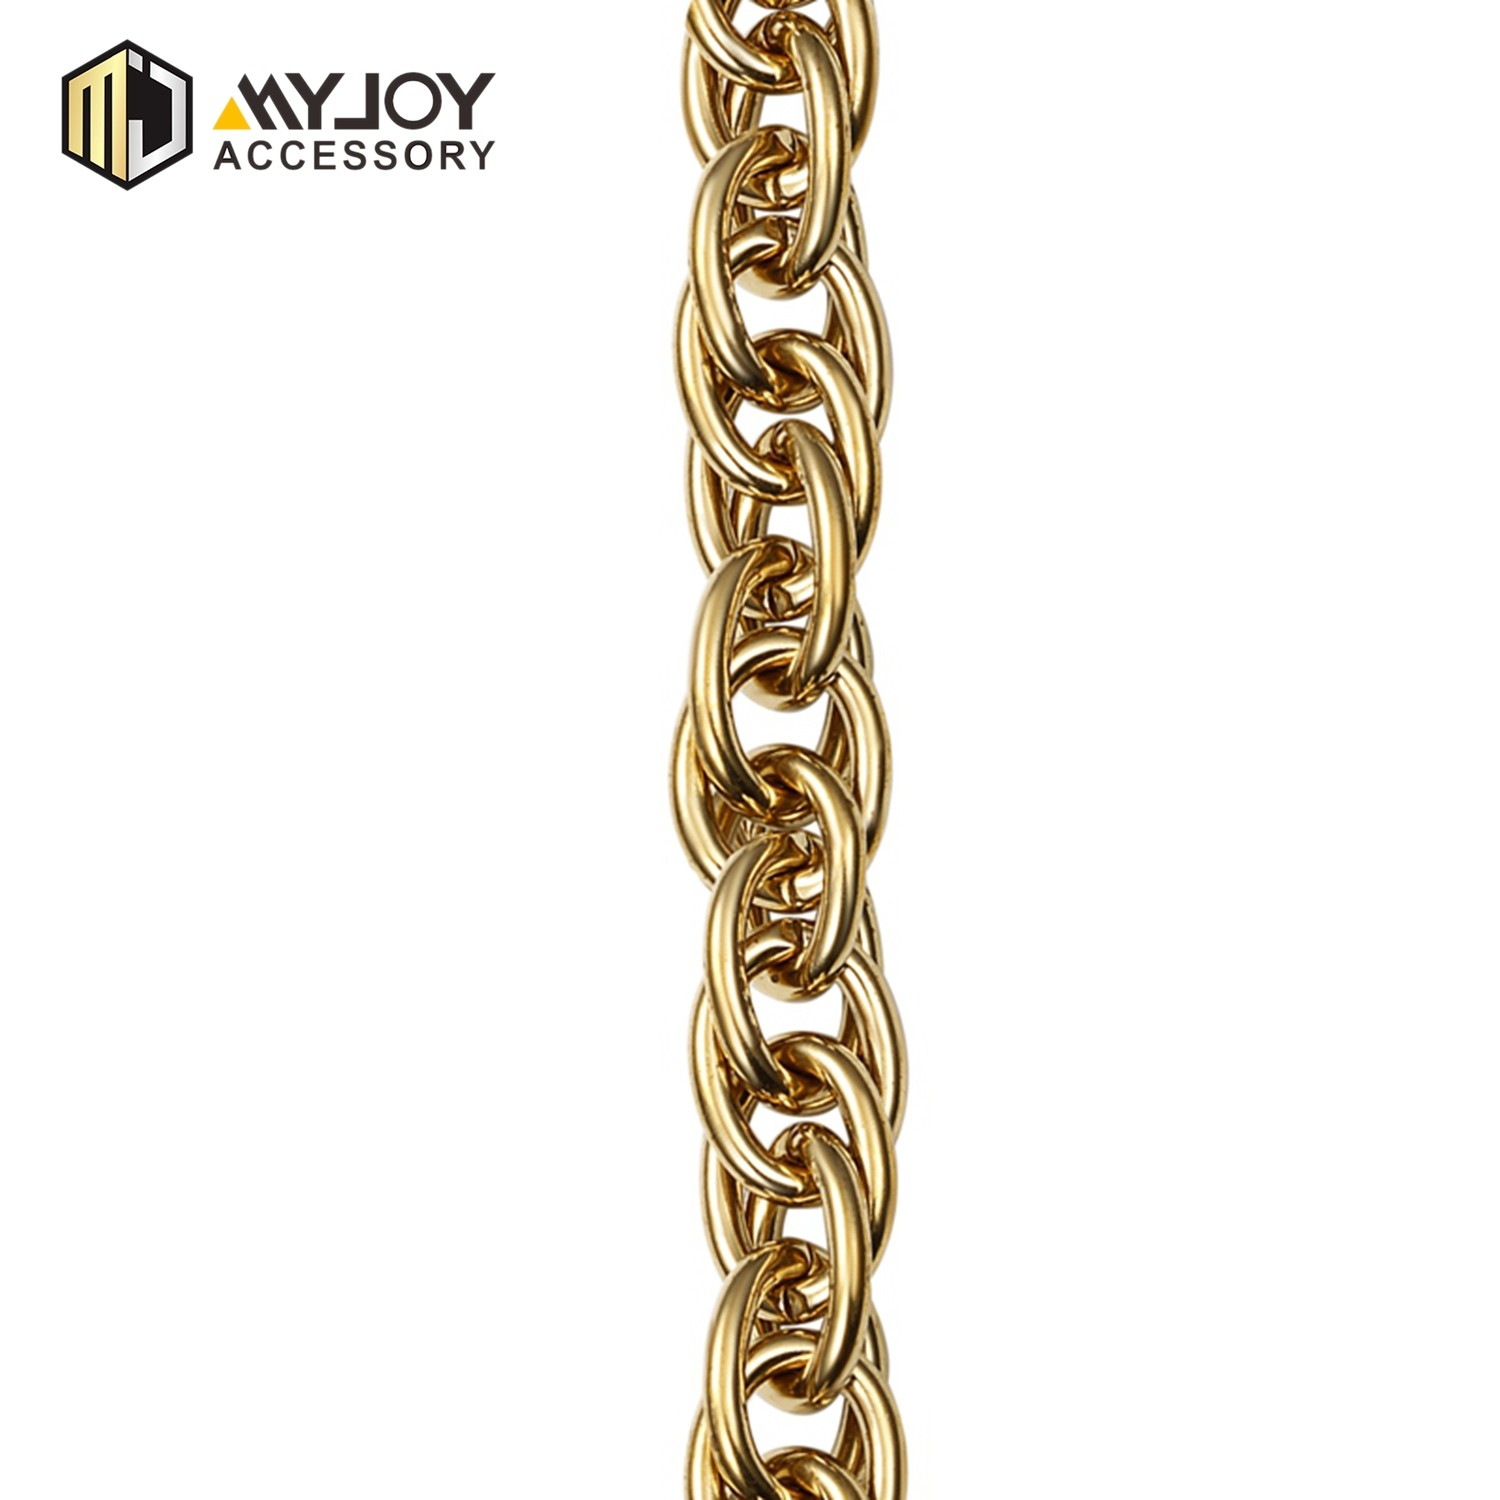 MYJOY vogue handbag strap chain for sale for bags-1